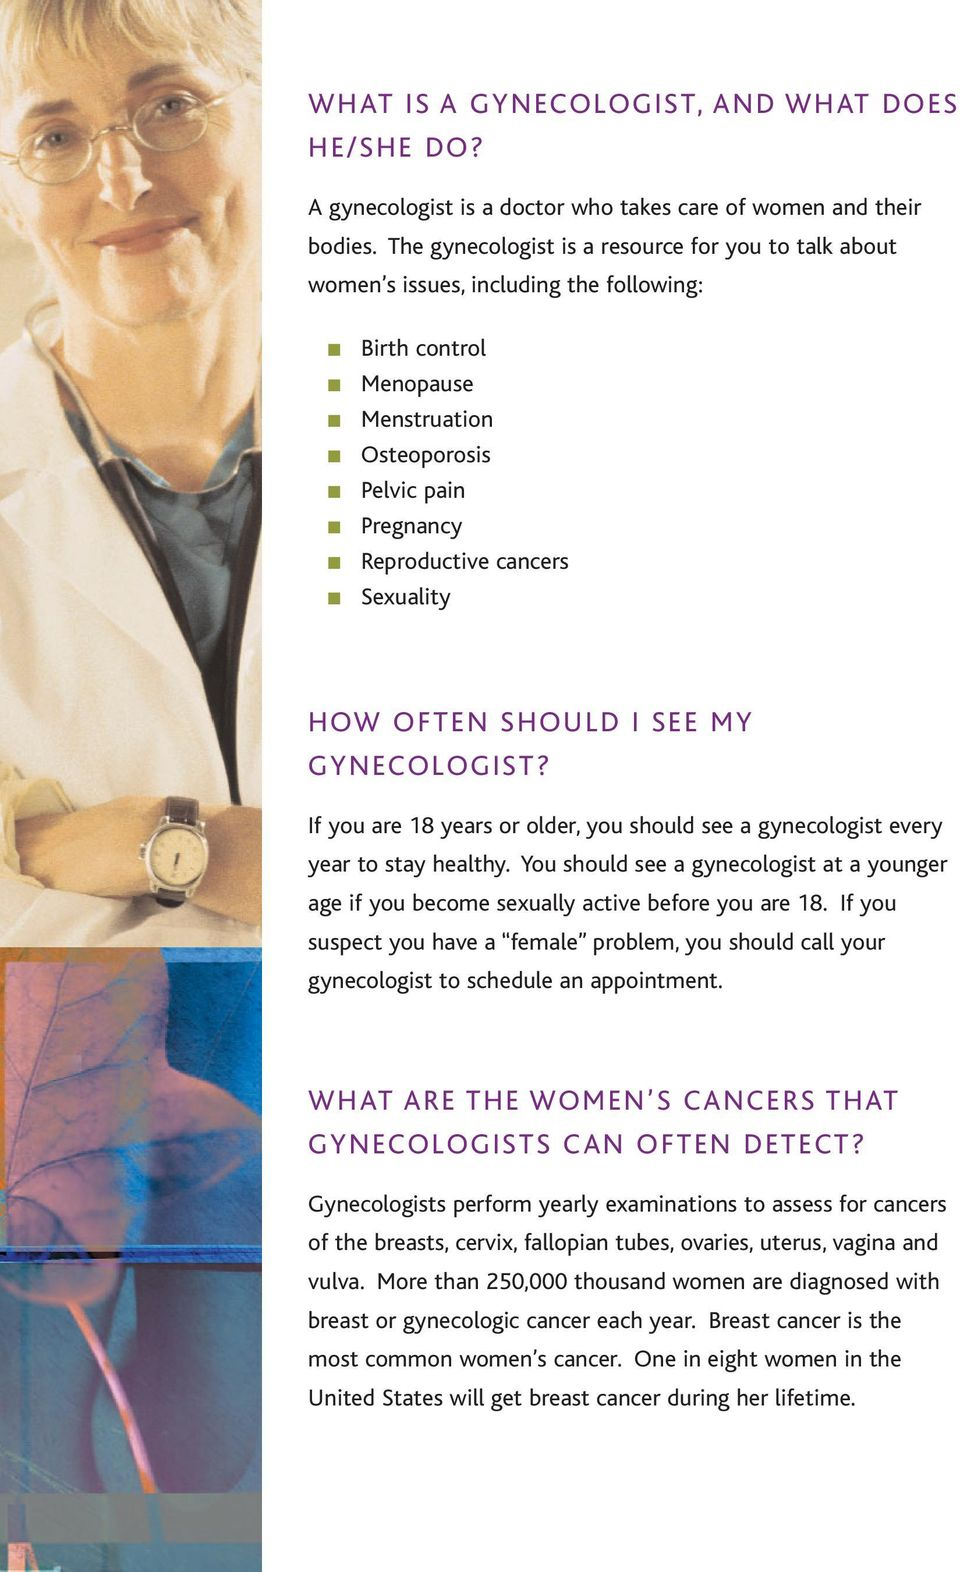 HOW OFTEN SHOULD I SEE MY GYNECOLOGIST? If you are 18 years or older, you should see a gynecologist every year to stay healthy.